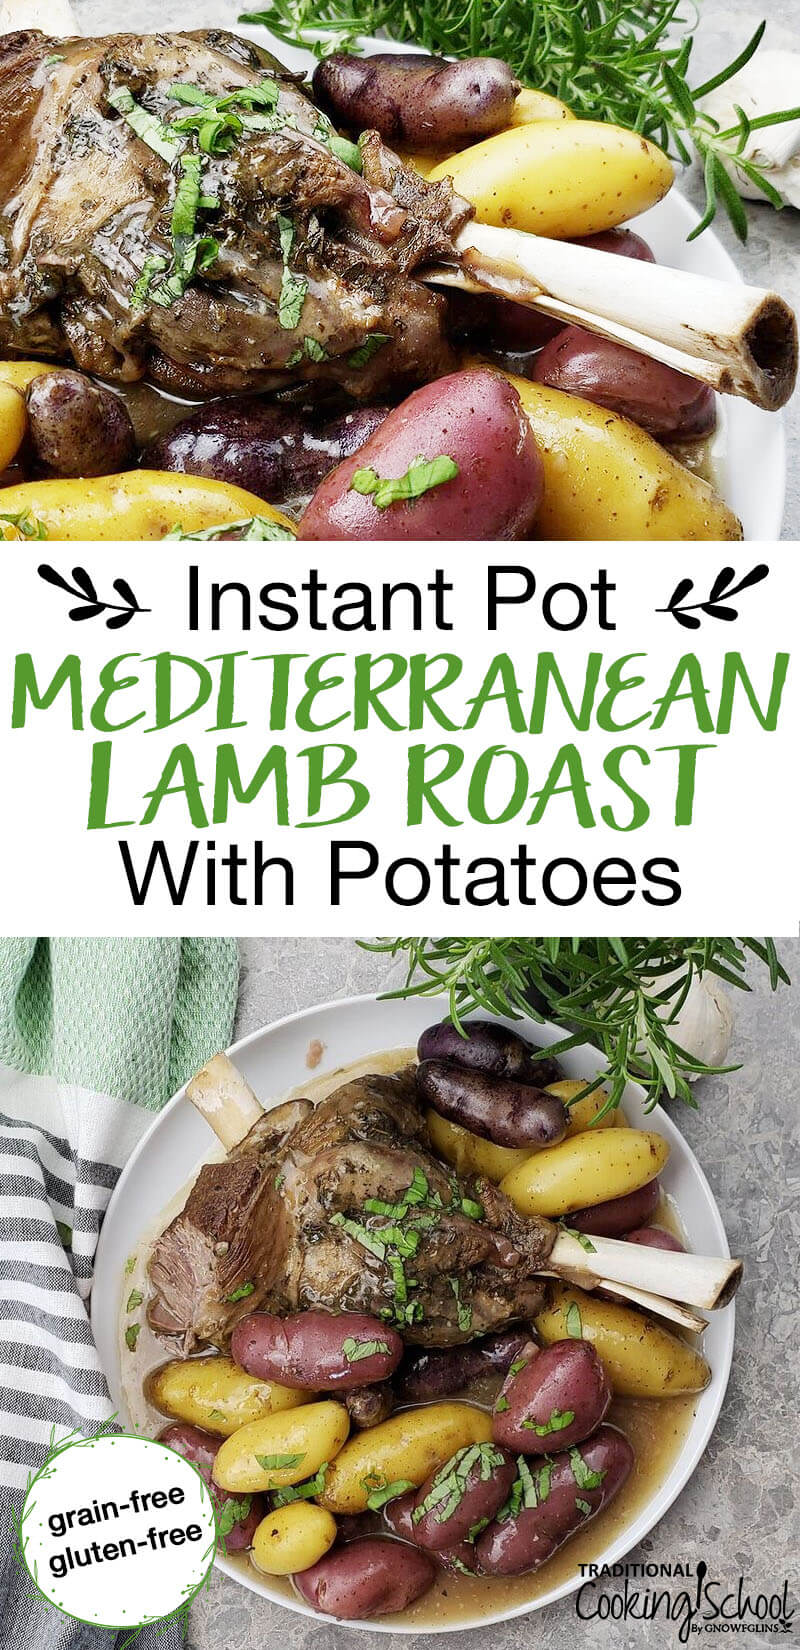 This Instant Pot lamb roast recipe is amazing because of the garlic and Mediterranean herbs. When you take your first bite... wow! And it's faster and more moist than cooking it in the oven!